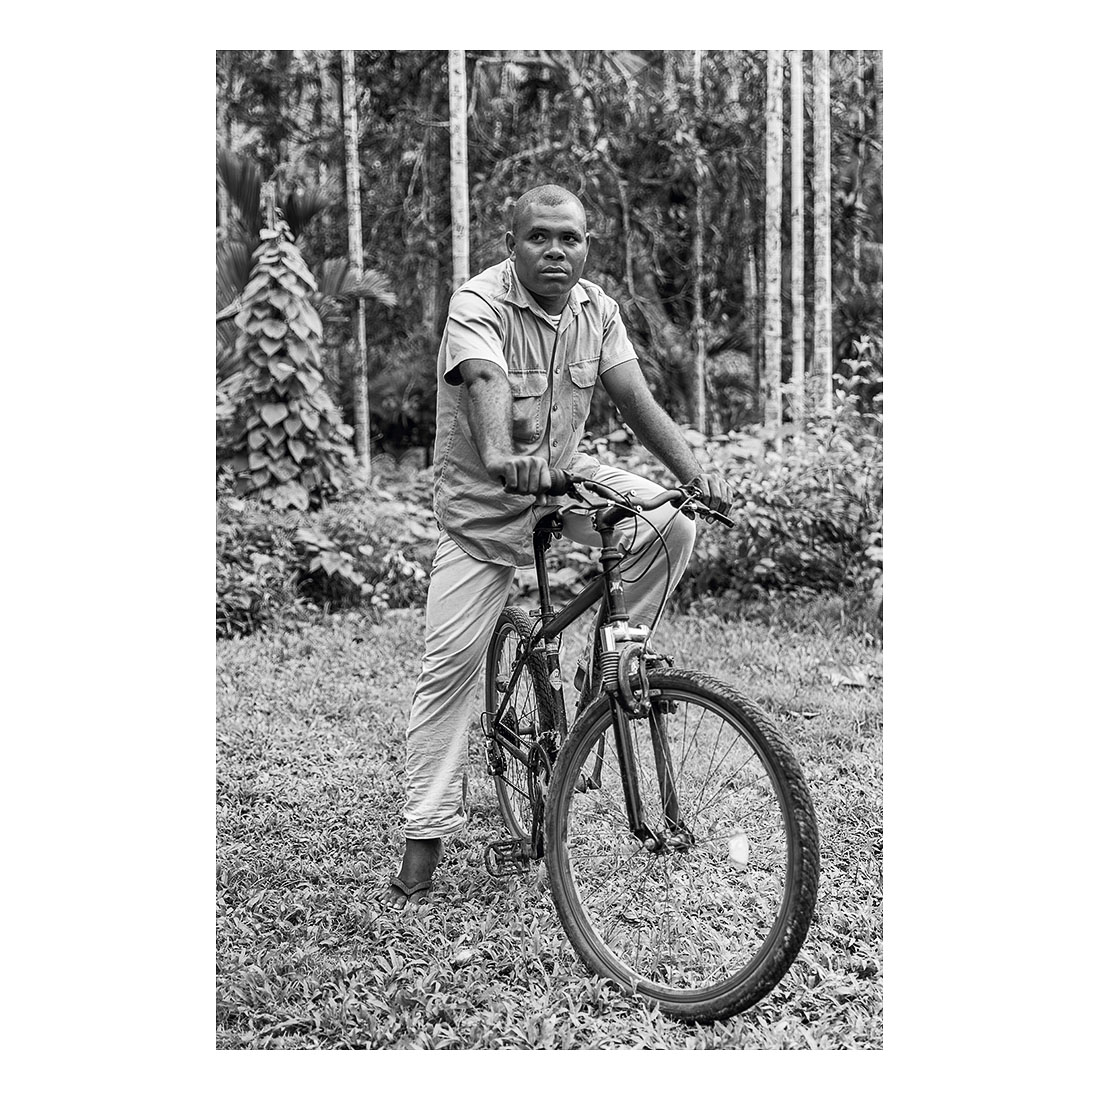 #7 Hulavu, Guadalcanal, Solomon Islands  (2016).  Archival pigment print on Ilford paper. Exhibition print 36cm x 24cm. Different sizes available.